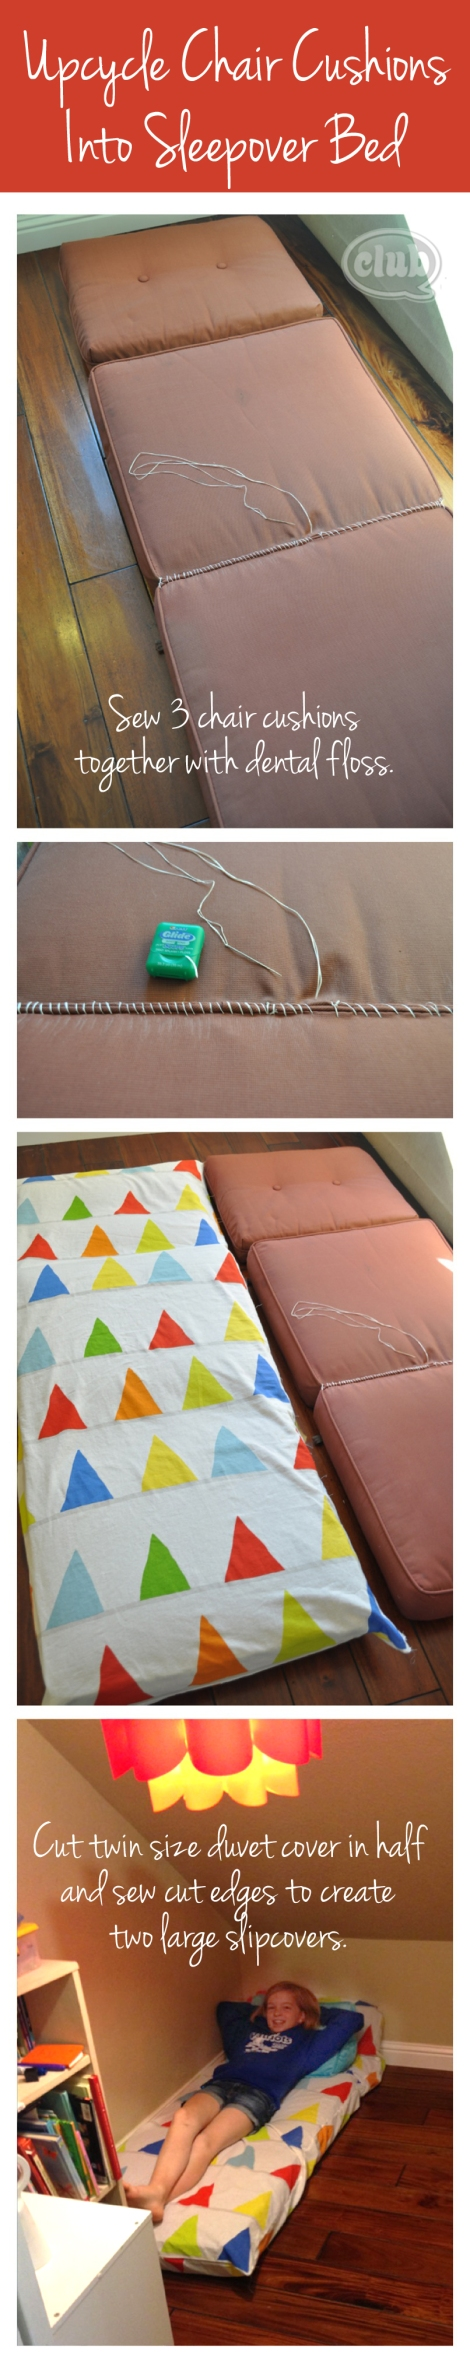 Upcycle-chair-cushions-DIY